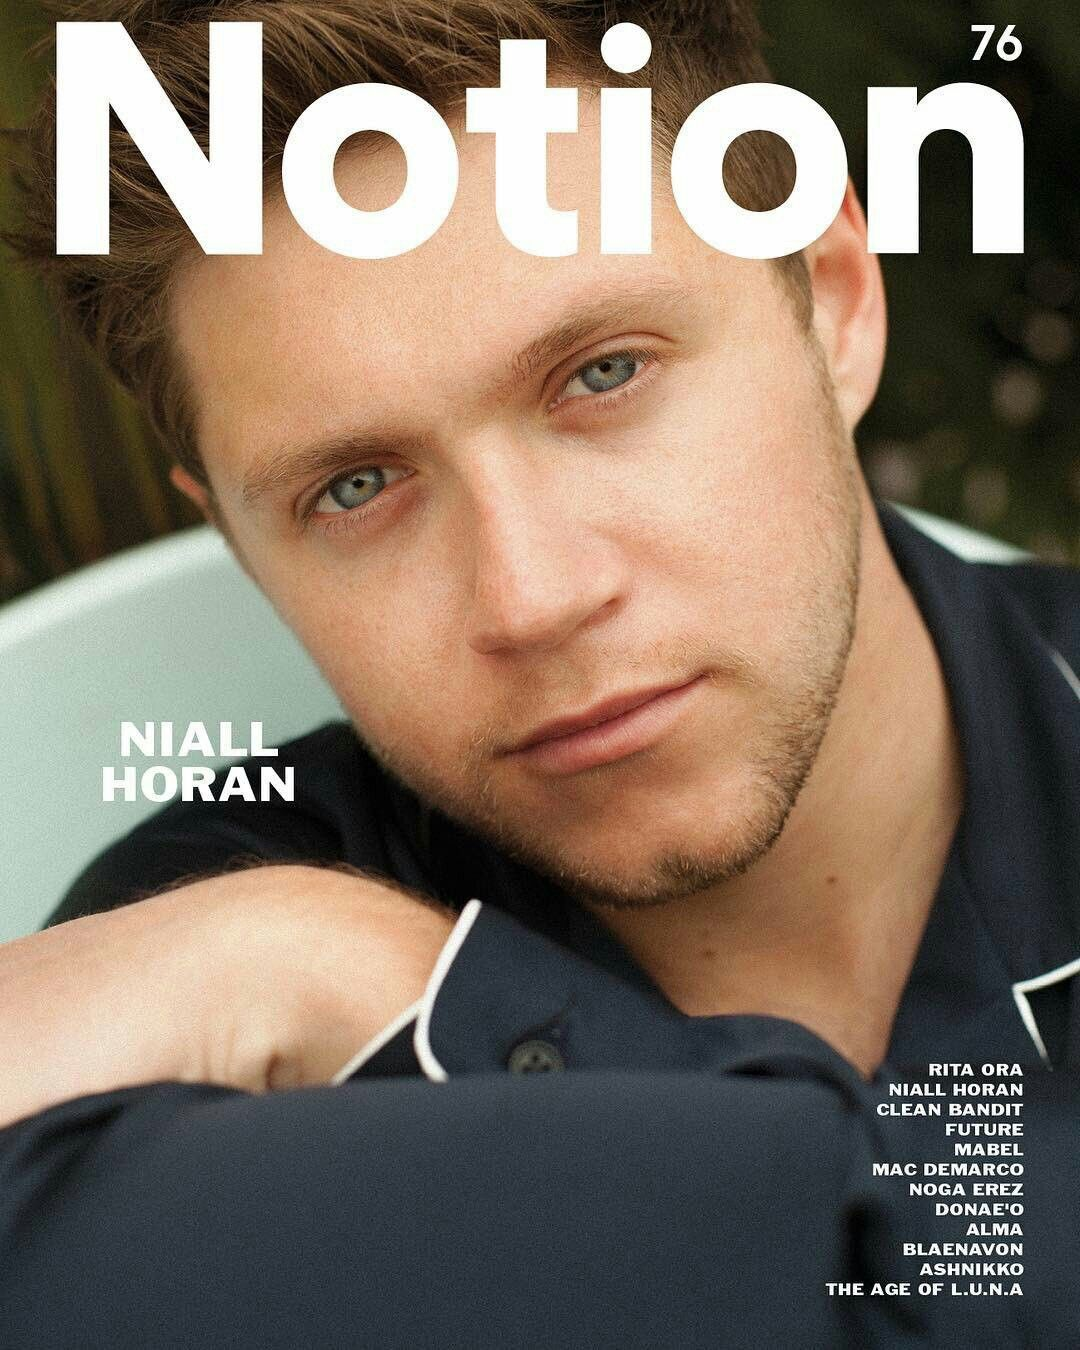 Pin by Ada on Nialler ) Niall horan, Niall horan 2017